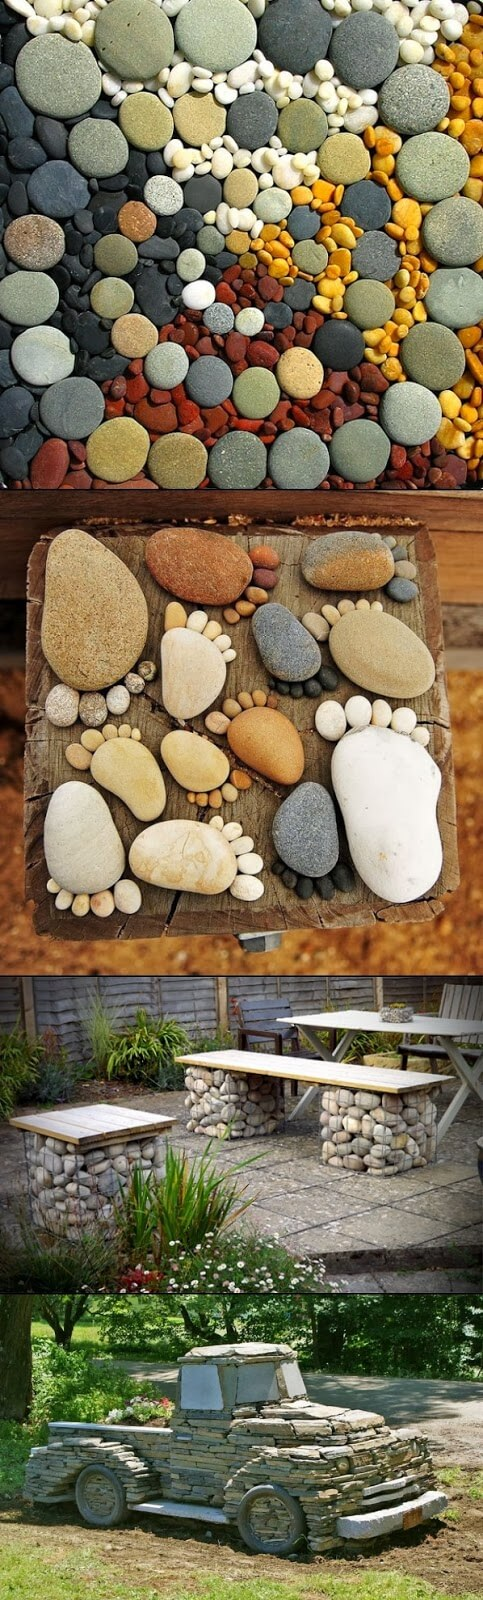 DIY Ideas To Upgrade Your Garden: Easy Garden DIY Projects with Stones